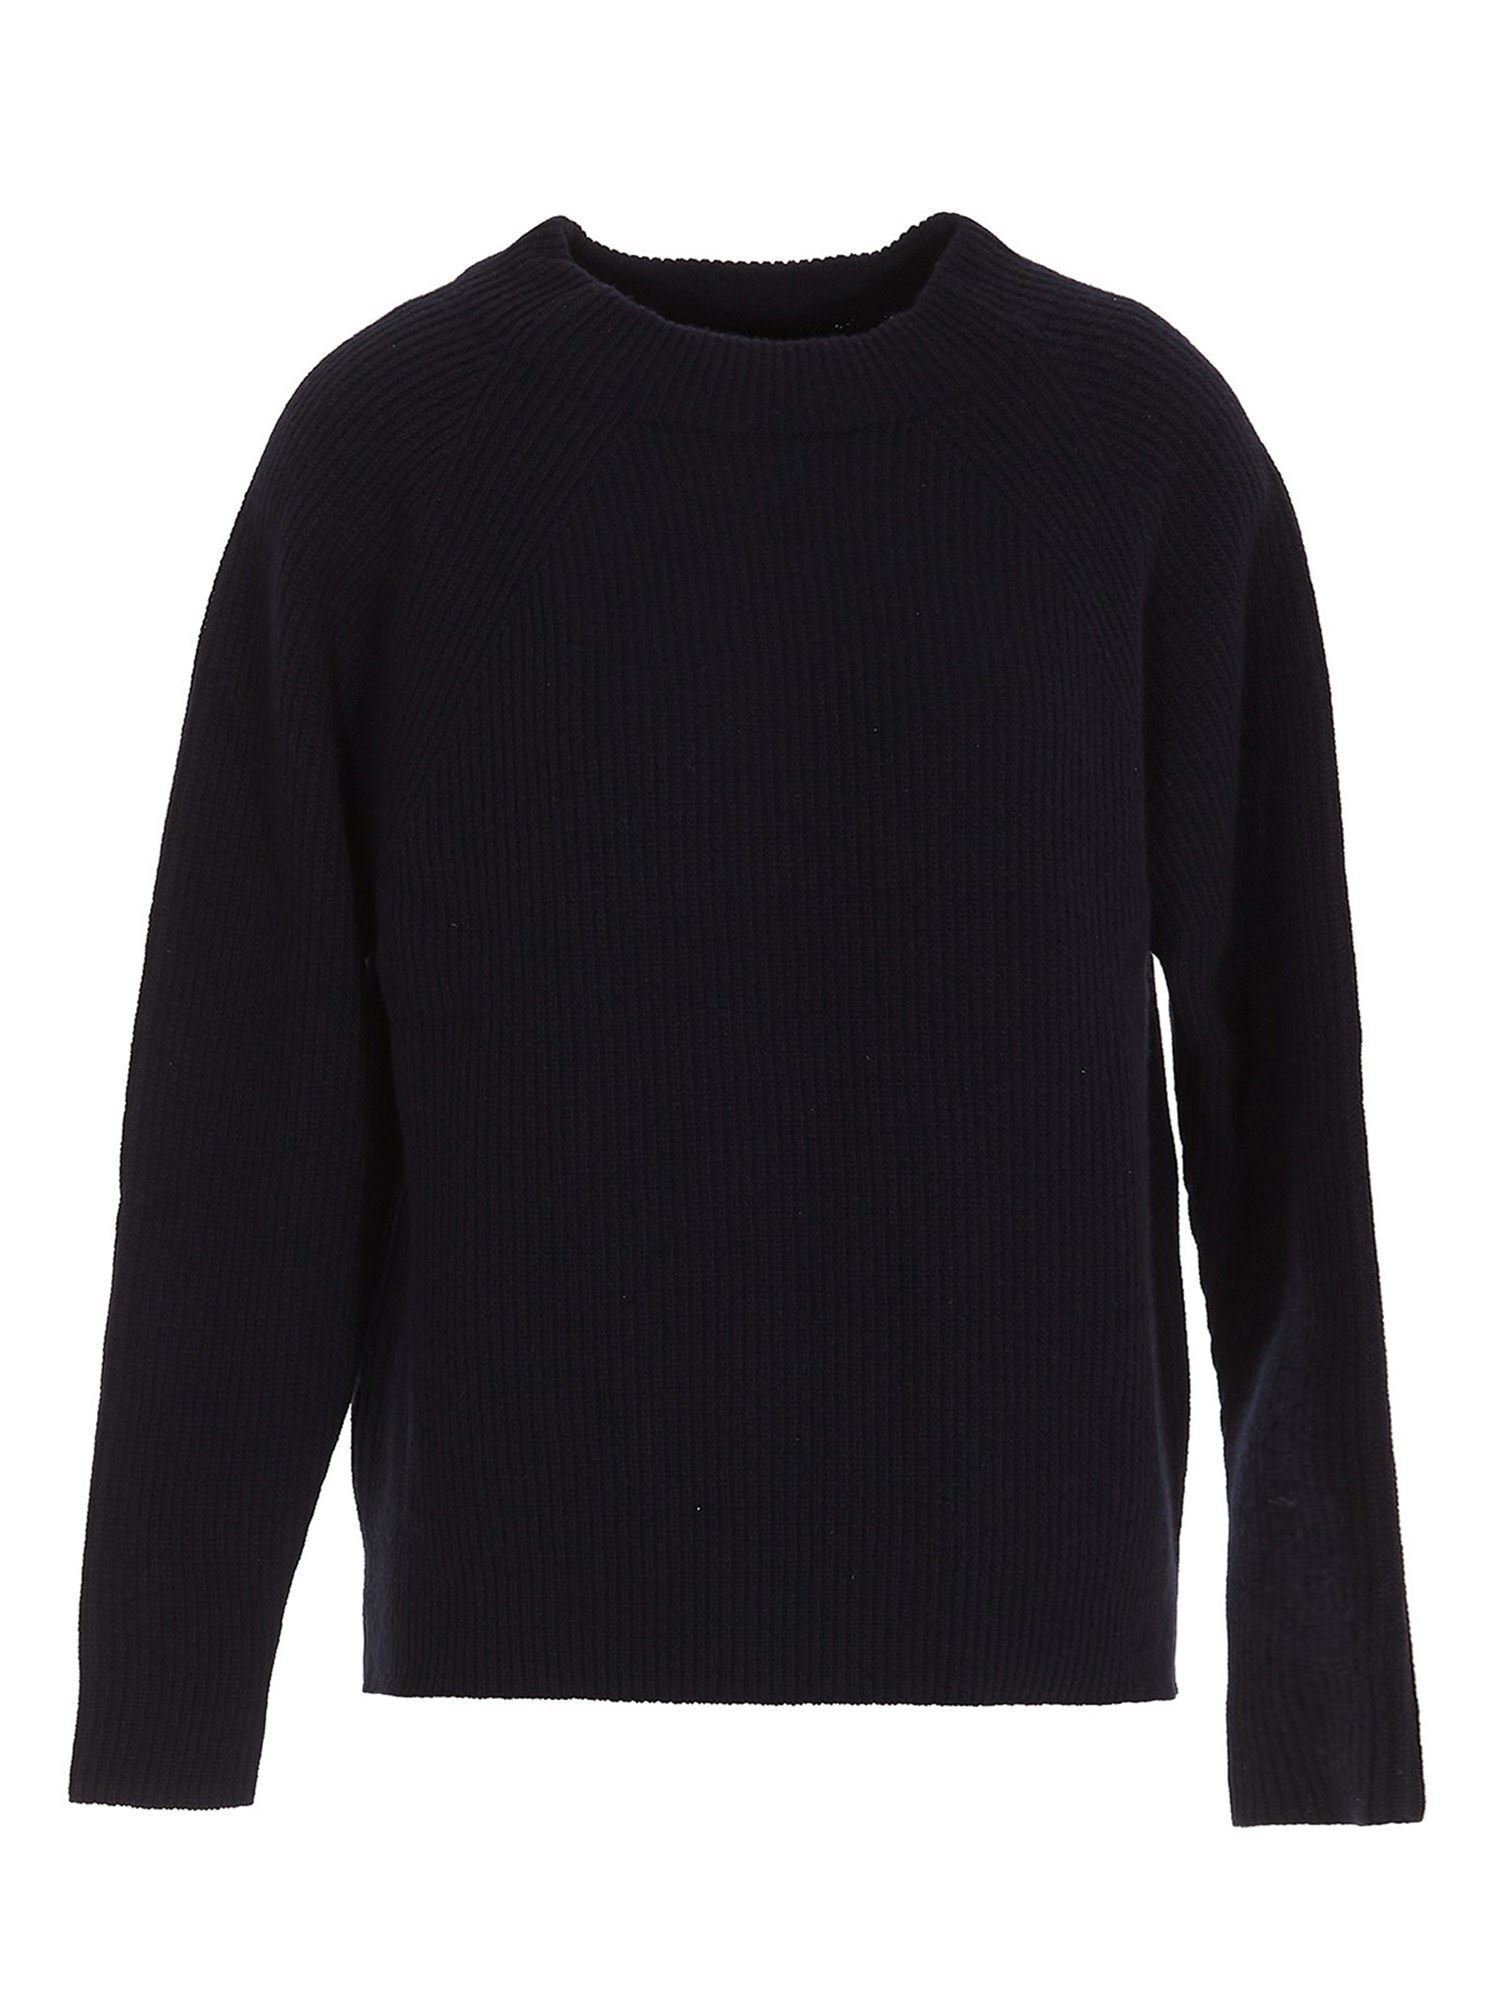 Aspesi WOOL AND CASHMERE BLEND CREWNECK